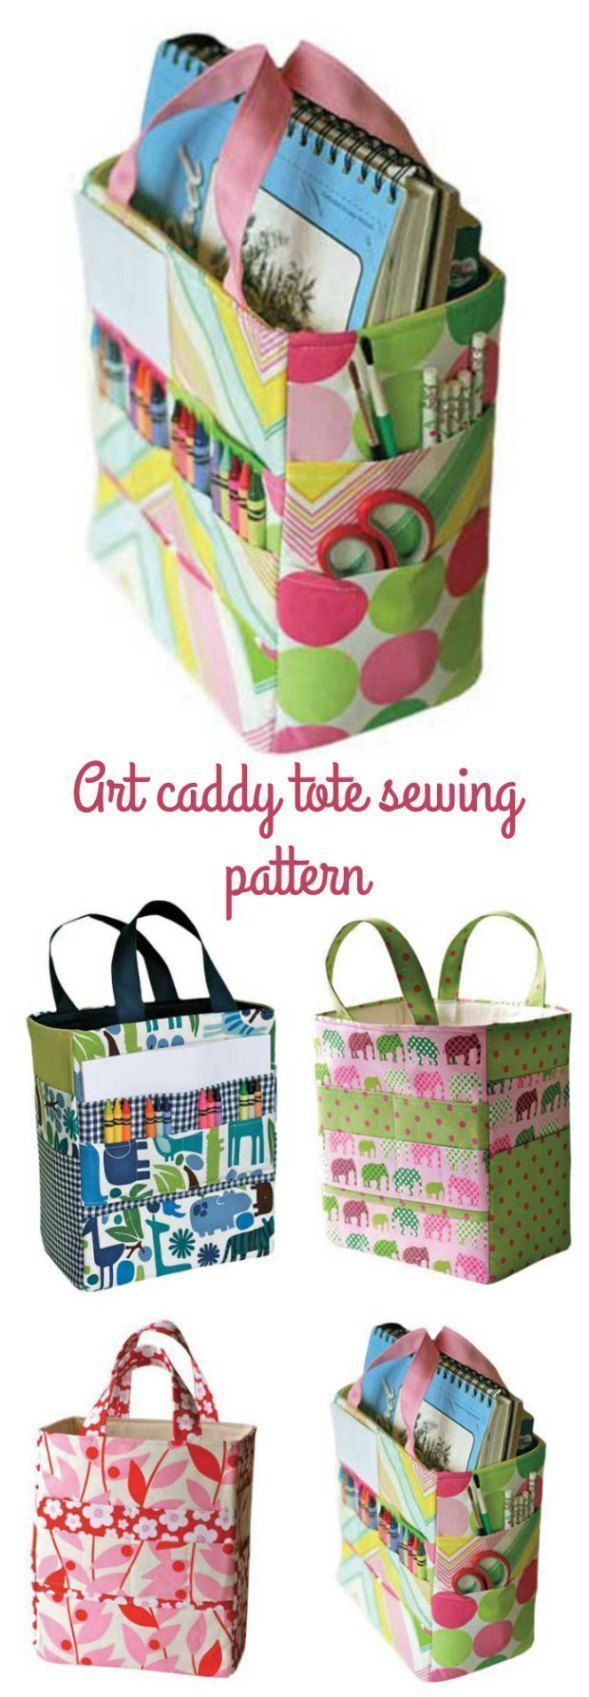 The Art Caddy Tote Sewing Pattern